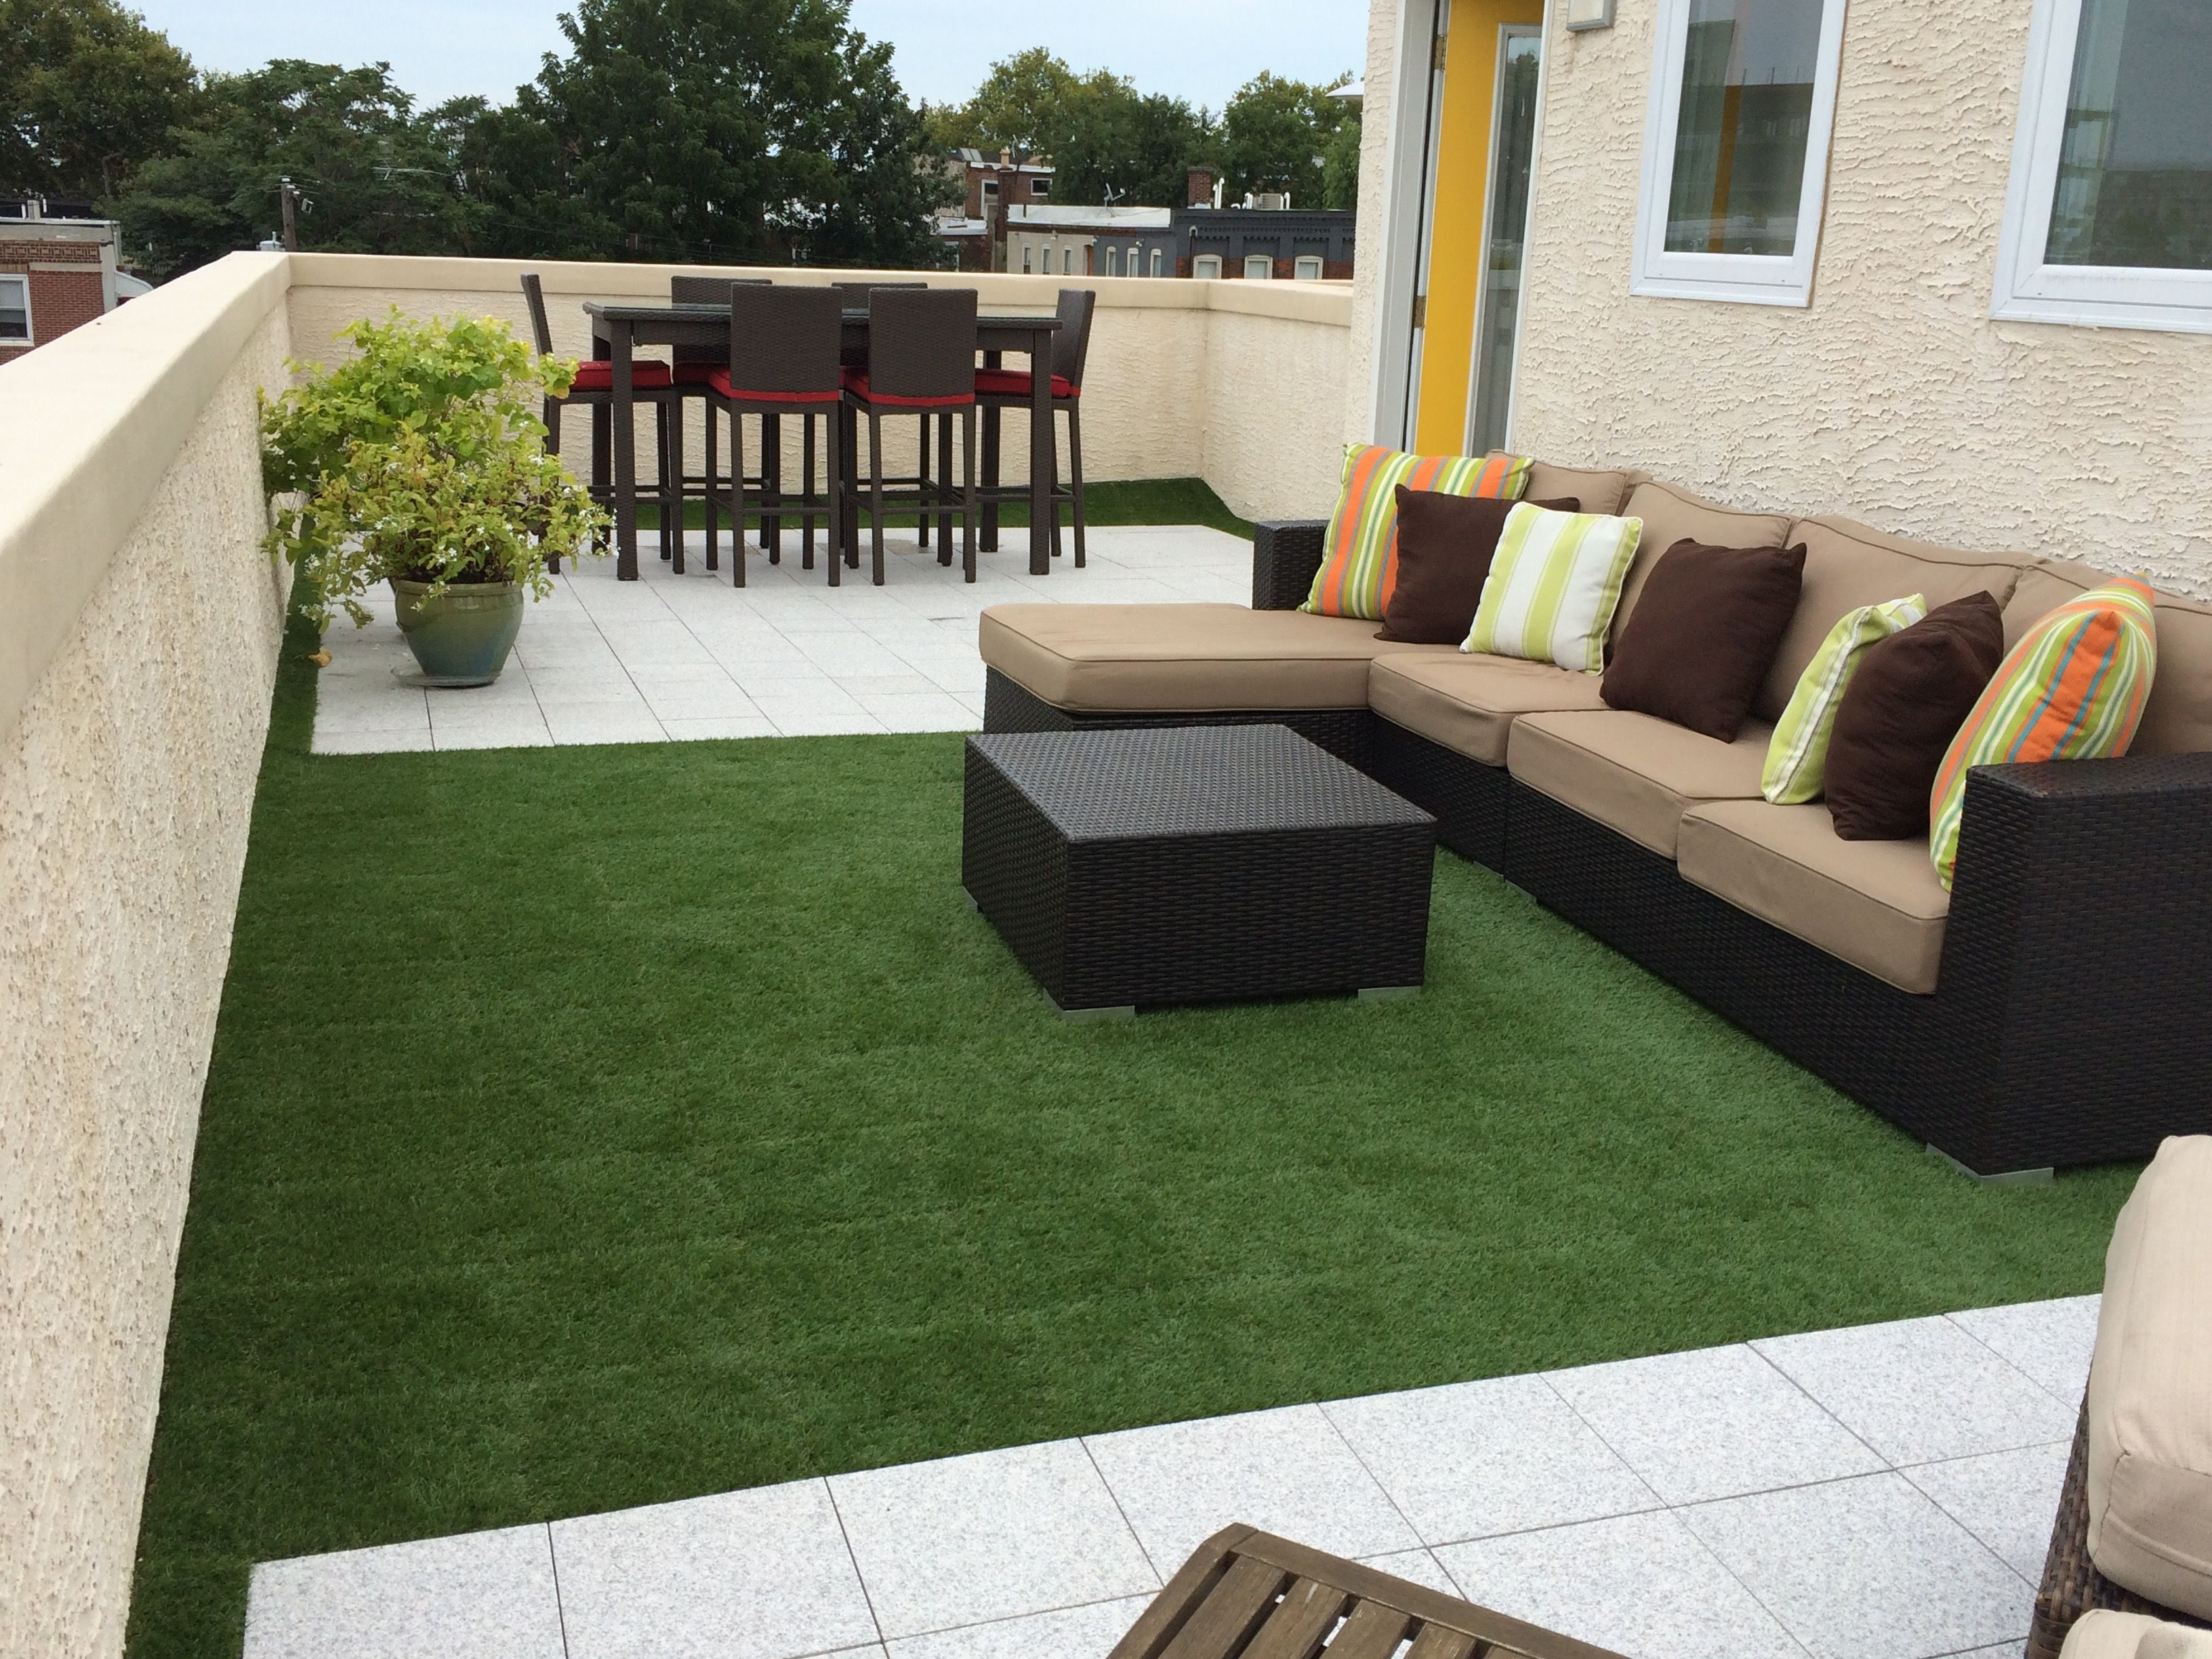 The Outdoor Modular Grass Tile Is An Easy To Install, Snap Together  Artificial Grass Turf Tile Option For Outdoor Use. Easily Connect The  Artificial Grass ...